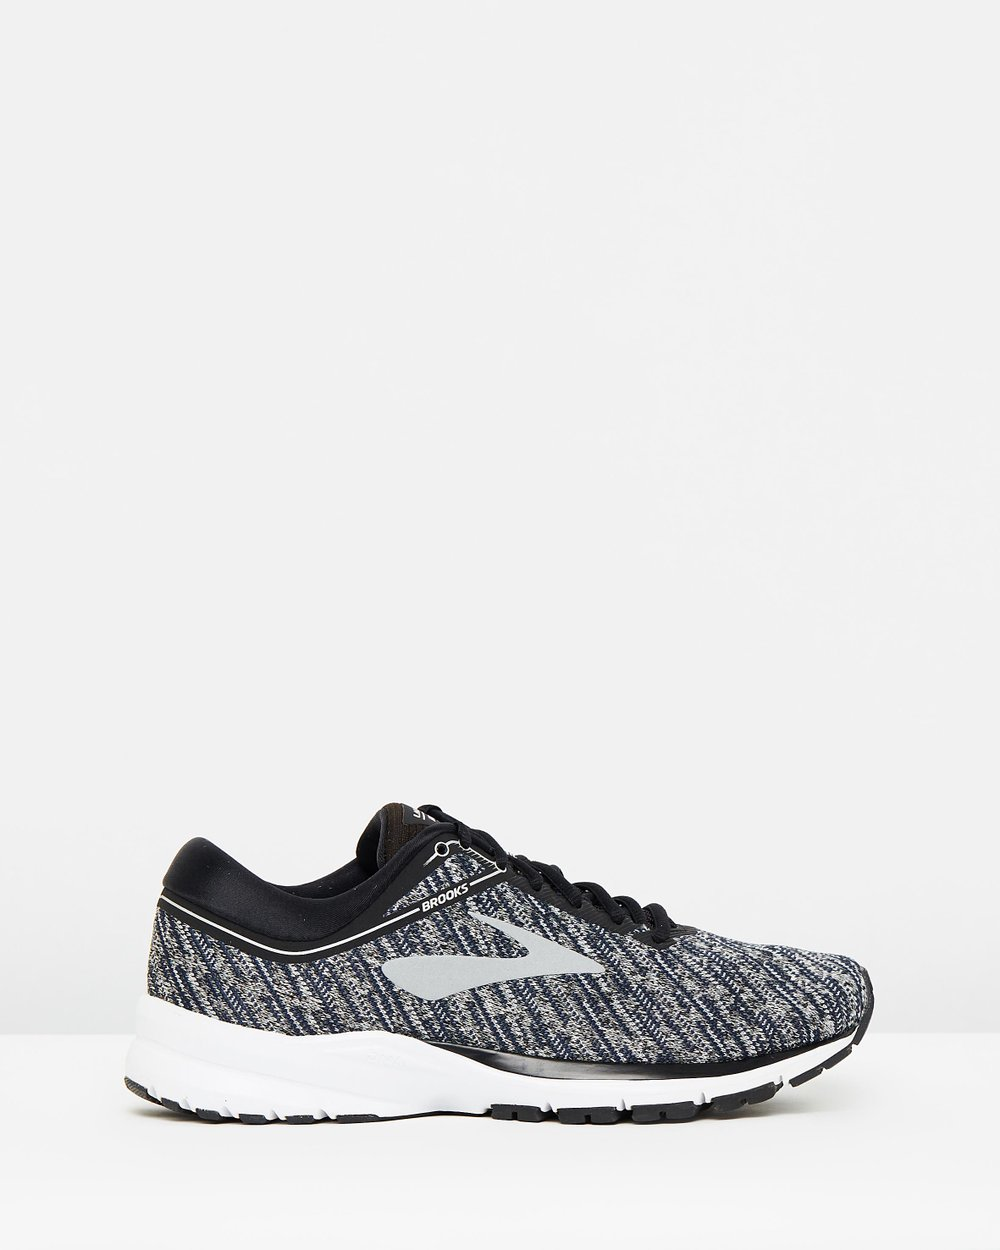 4a9d71cdc70b9 Launch 5 Running Shoes - Women s by Brooks Online